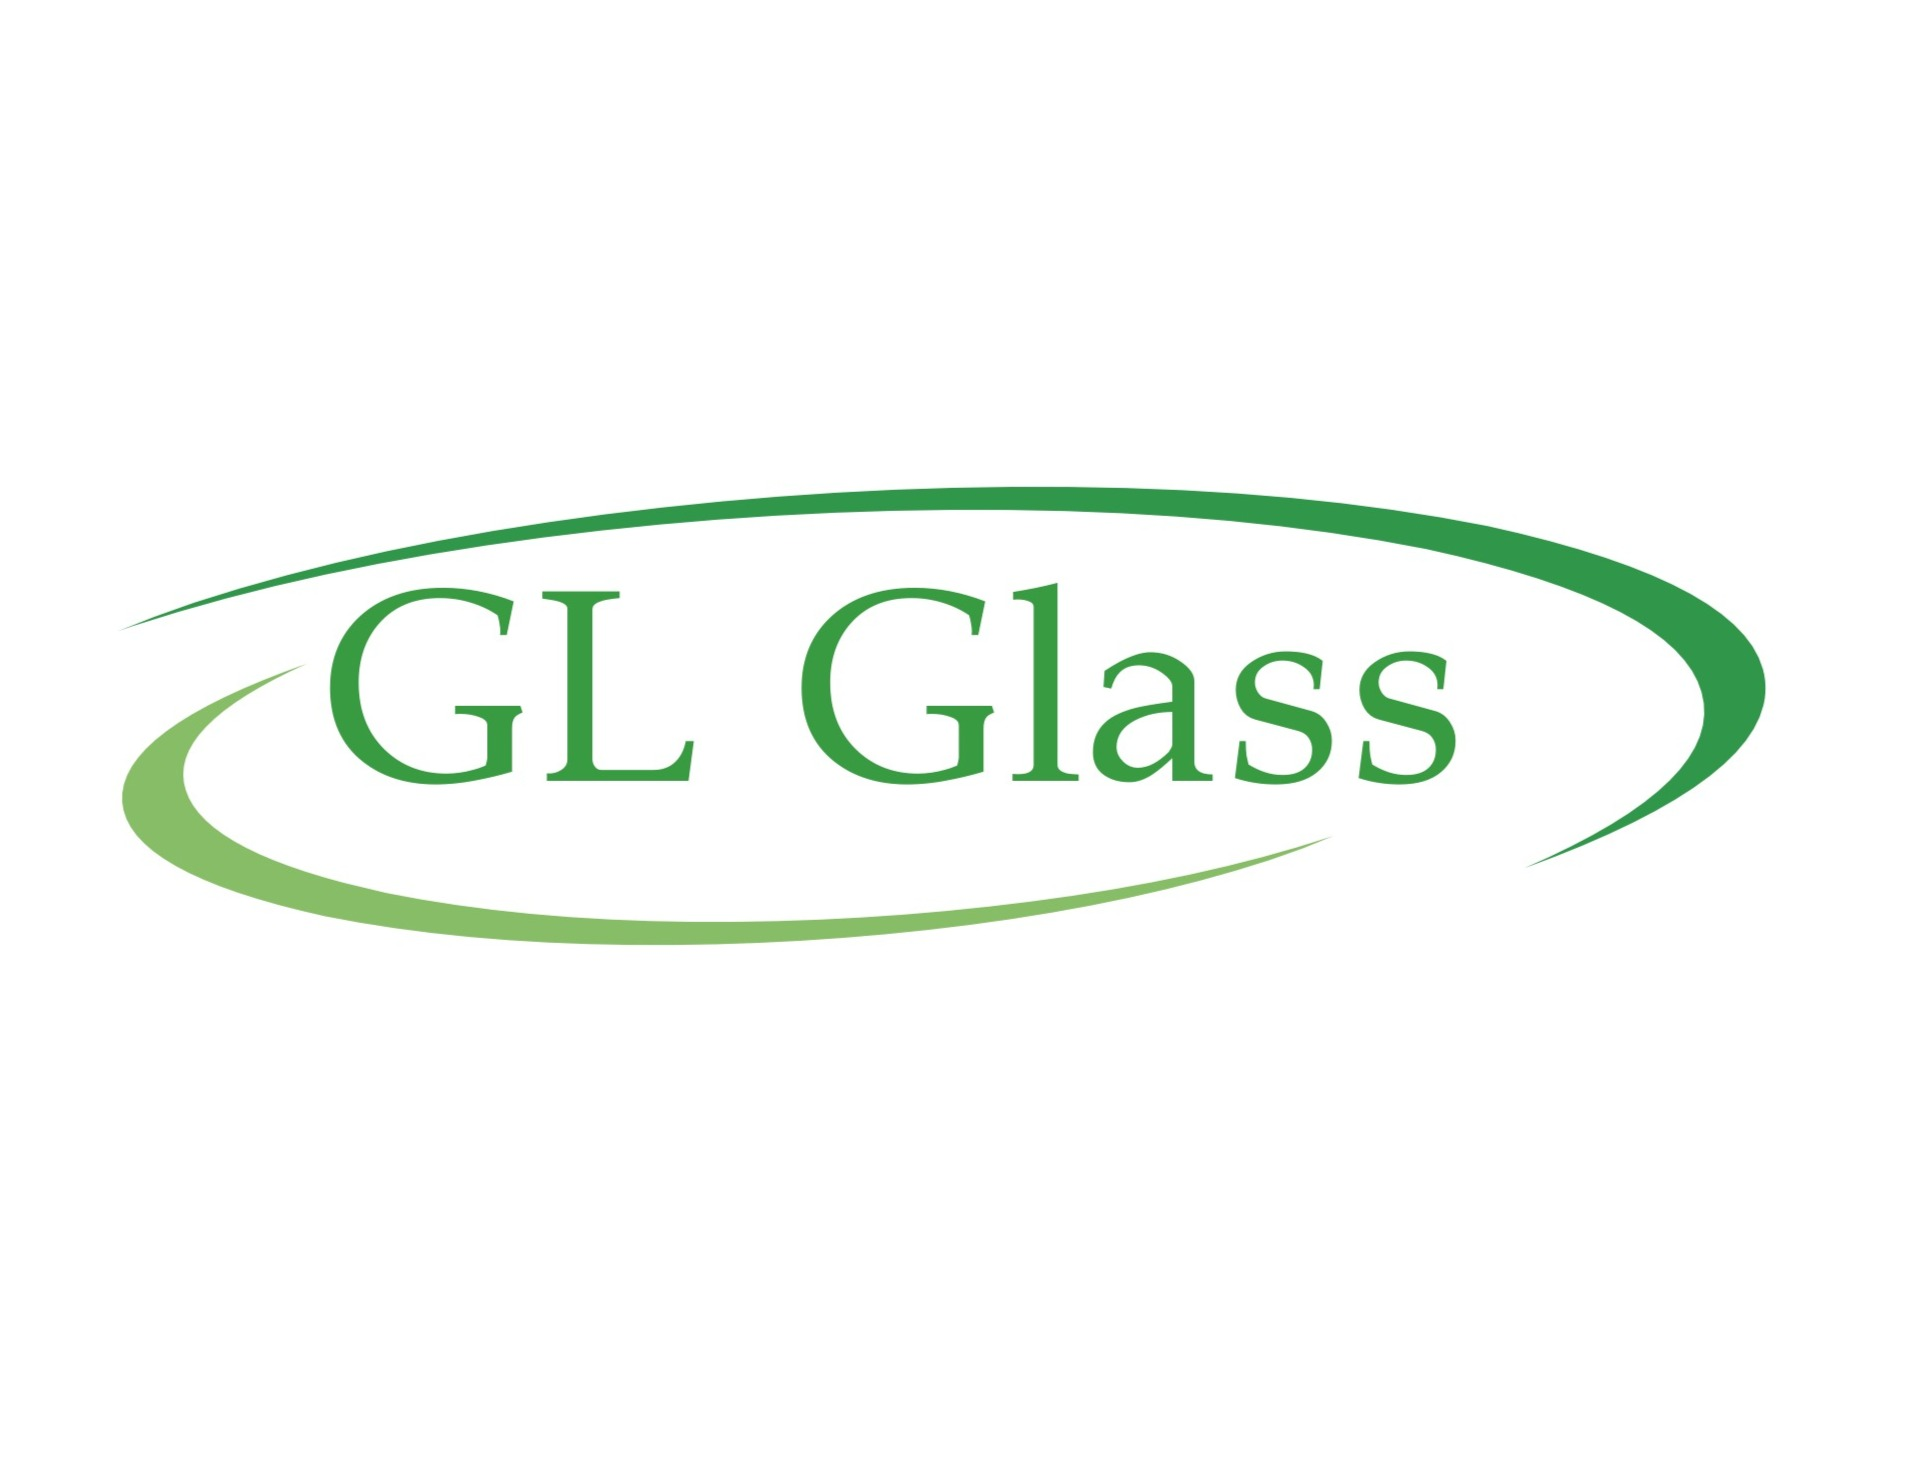 GL Glass LTD